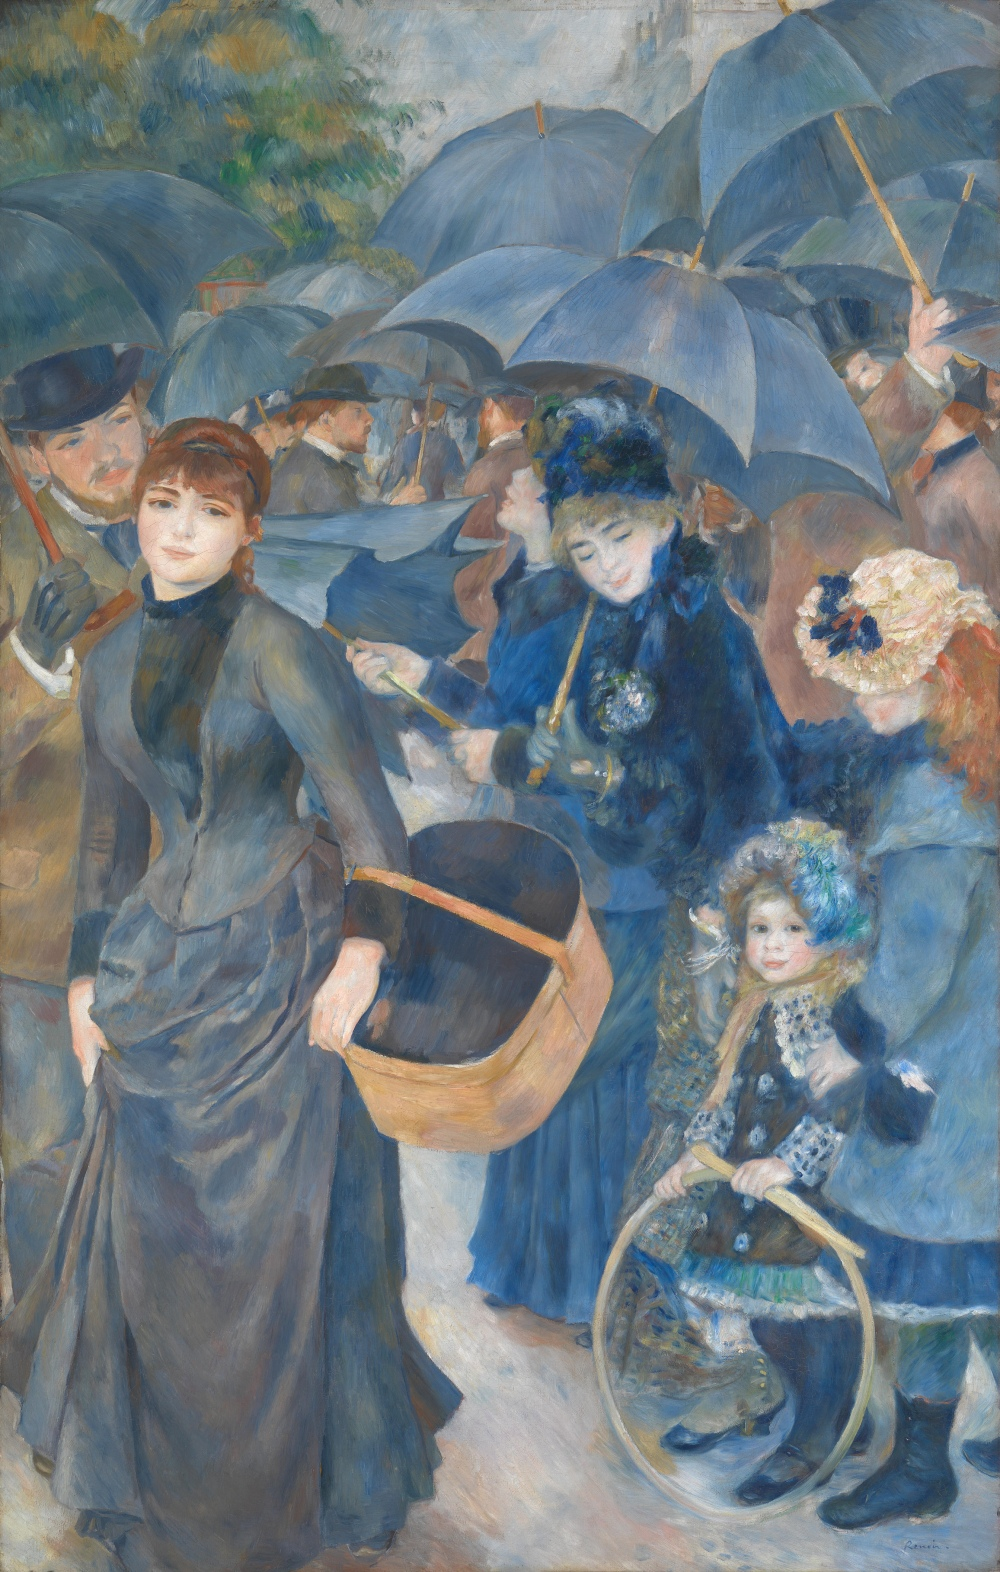 2_Pierre-Auguste_Renoir,_The_Umbrellas,_ca._1881-86